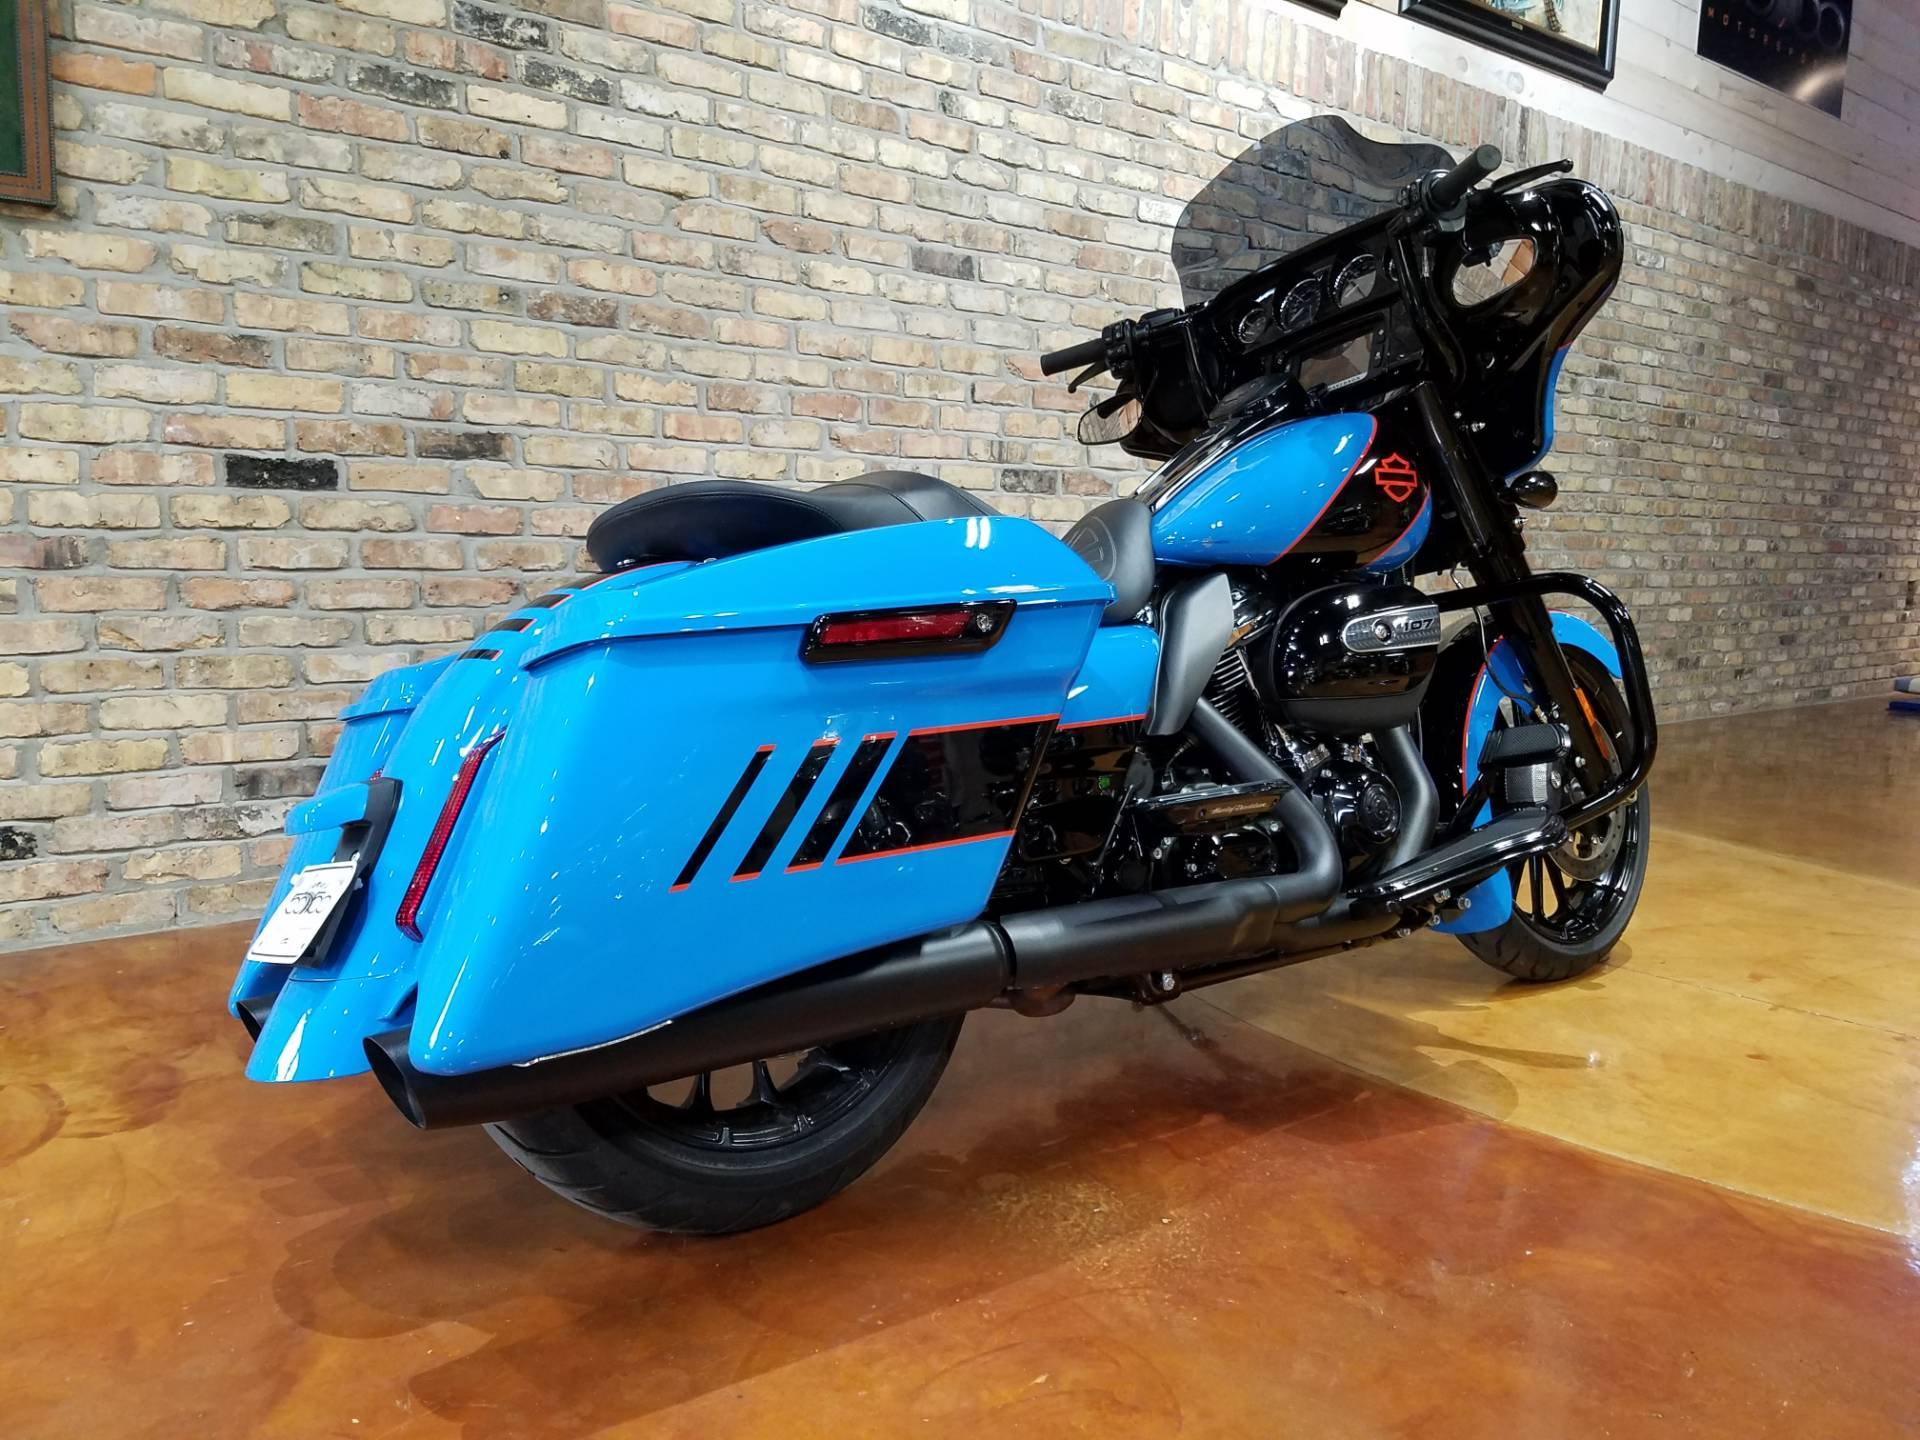 2018 Harley-Davidson FLHXS Street Glide Special in Big Bend, Wisconsin - Photo 3